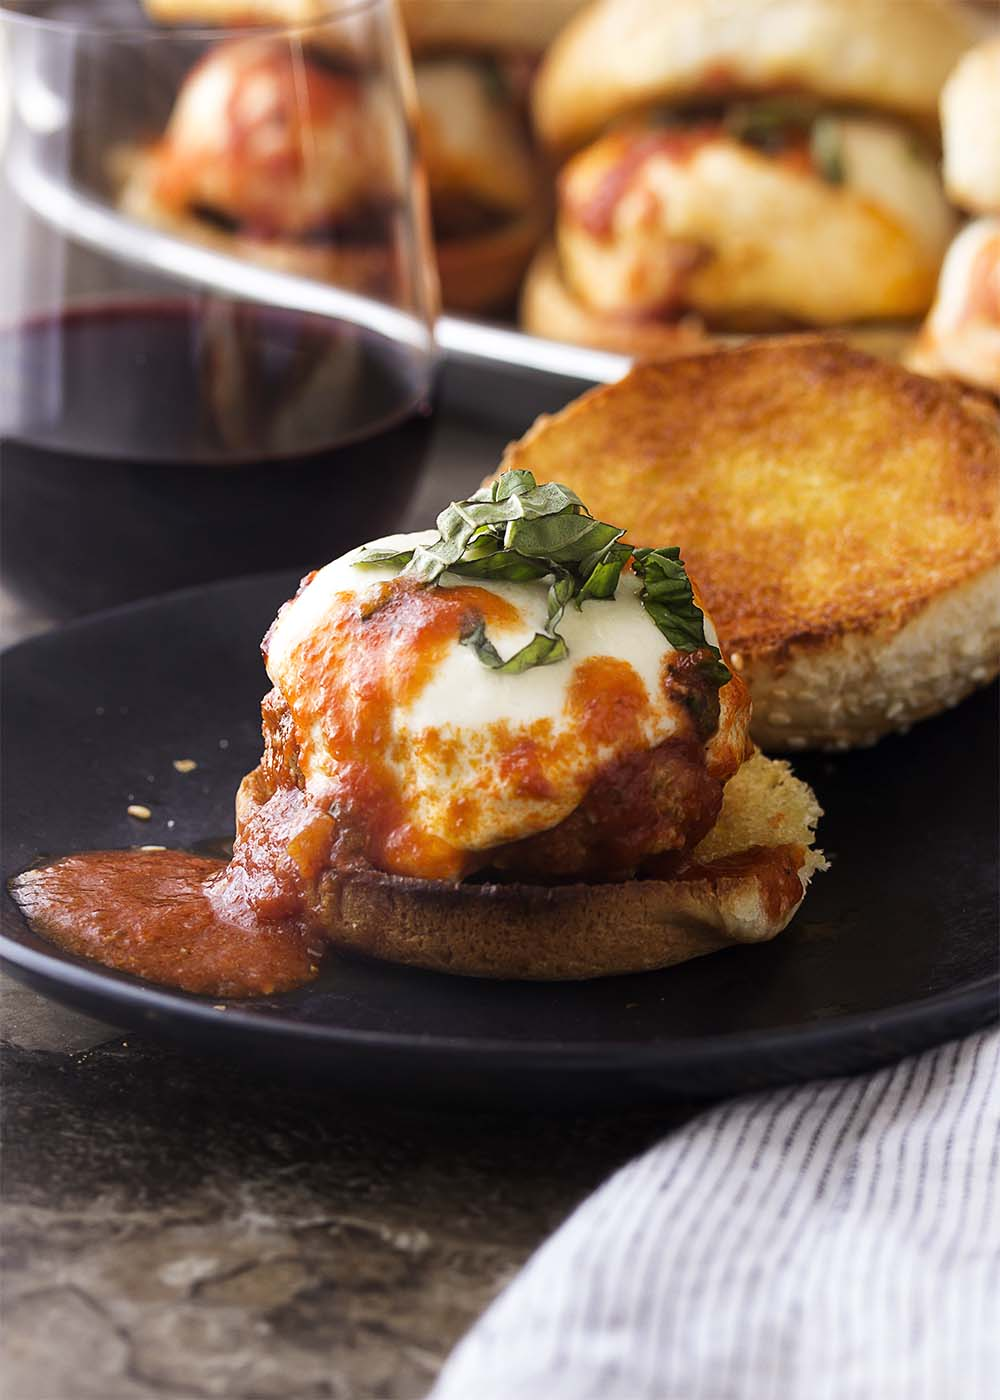 Italian meatball slider topped with melted mozzarella cheese and sliced basil on a toasted bun with marinara sauce. Glass of wine and more sliders in the background.